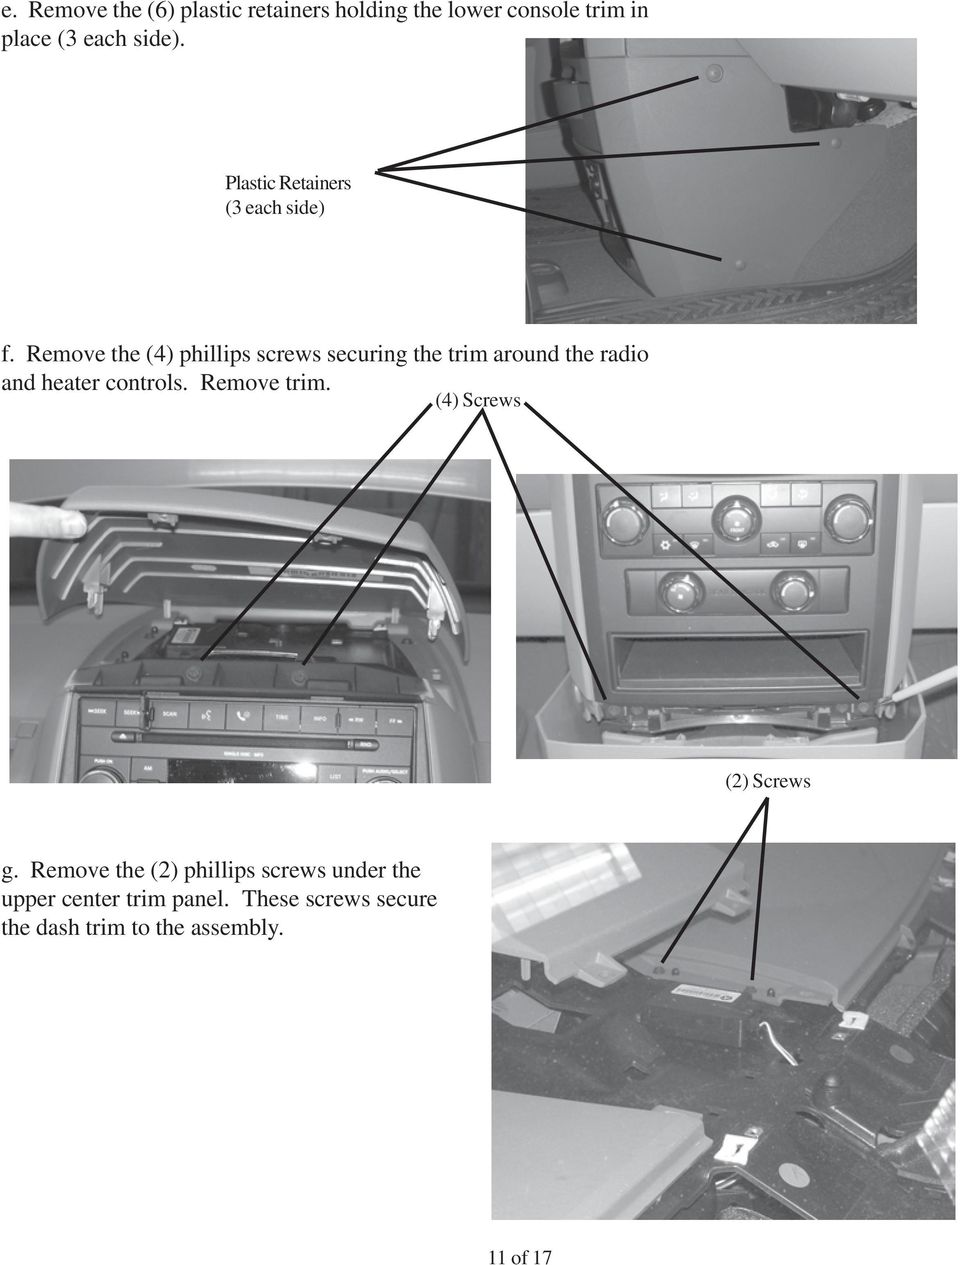 Remove the (4) phillips screws securing the trim around the radio and heater controls.